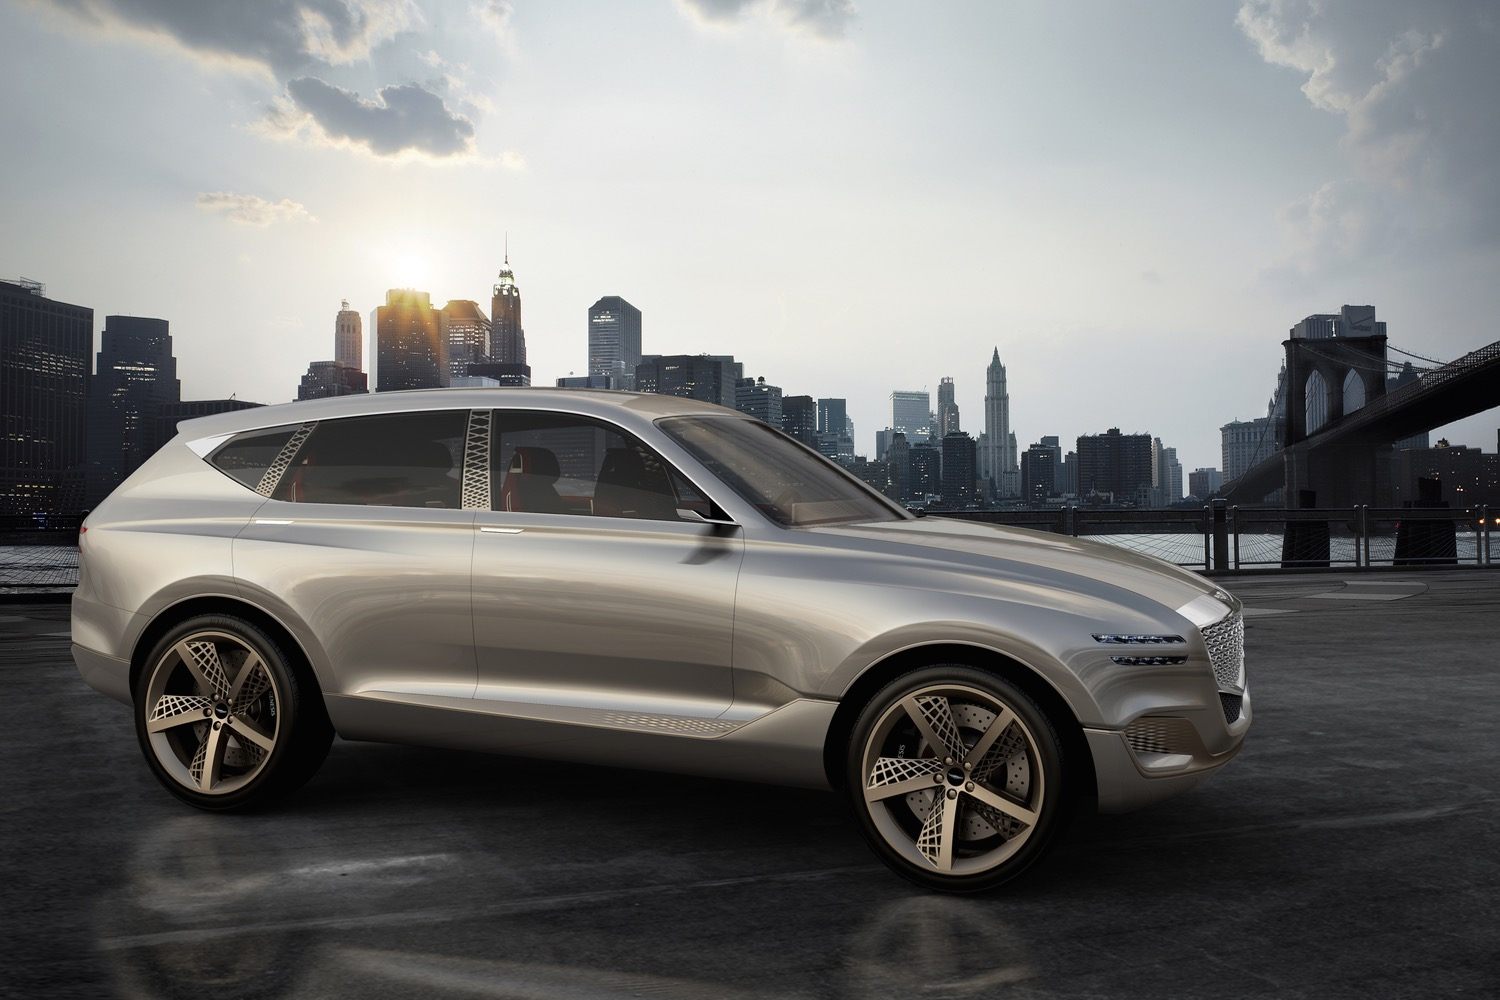 Genesis Wows New York Auto Show With Futuristic Fuel Cell SUV